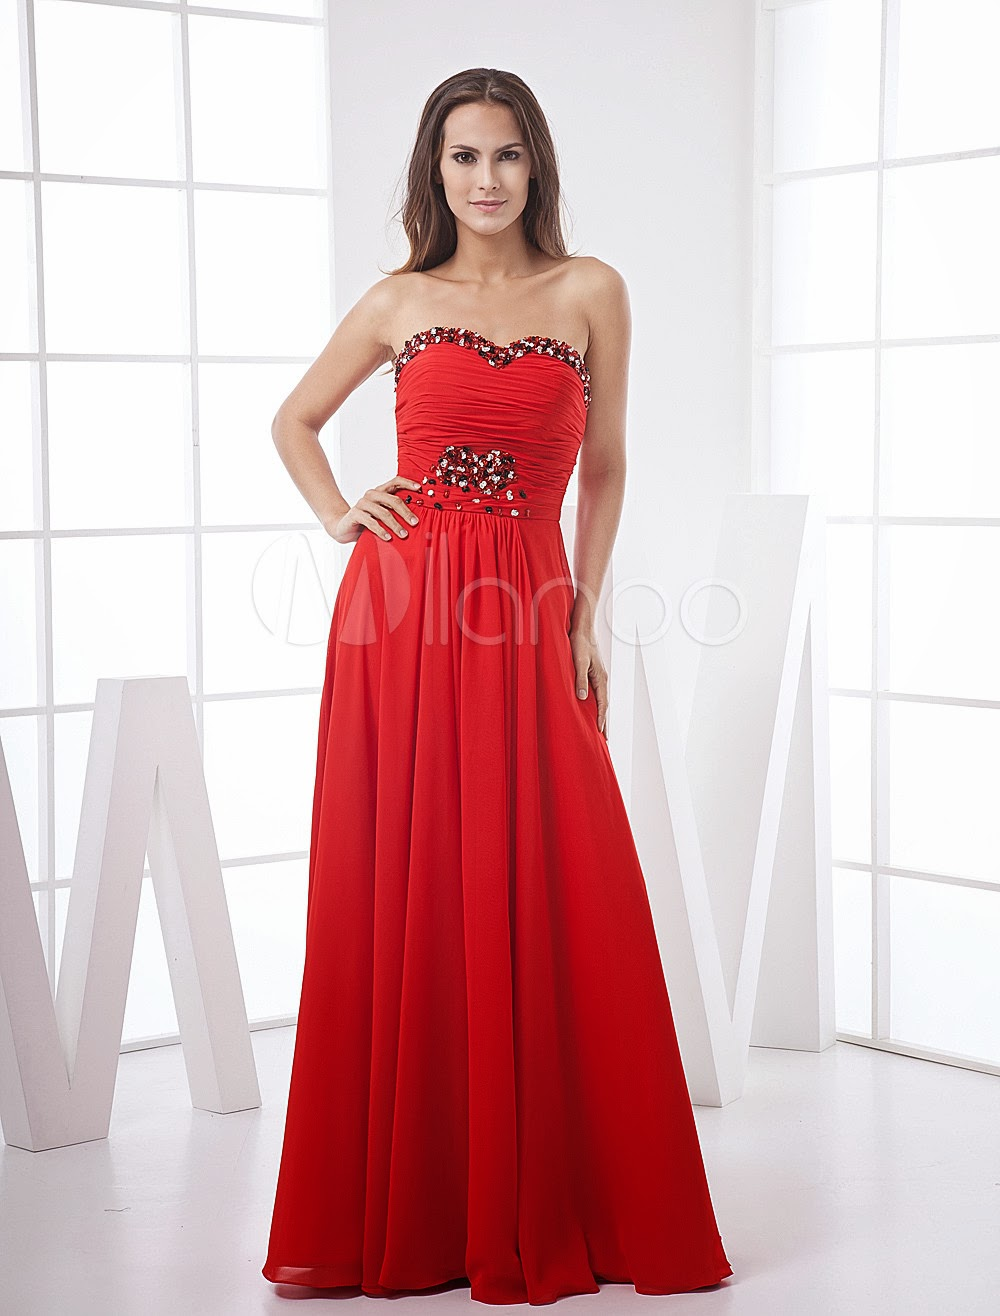 China Wholesale Dresses - Unique Red A-line Empire Waist Strapless Sweetheart Hand-made Paillette Satin Evening Dress